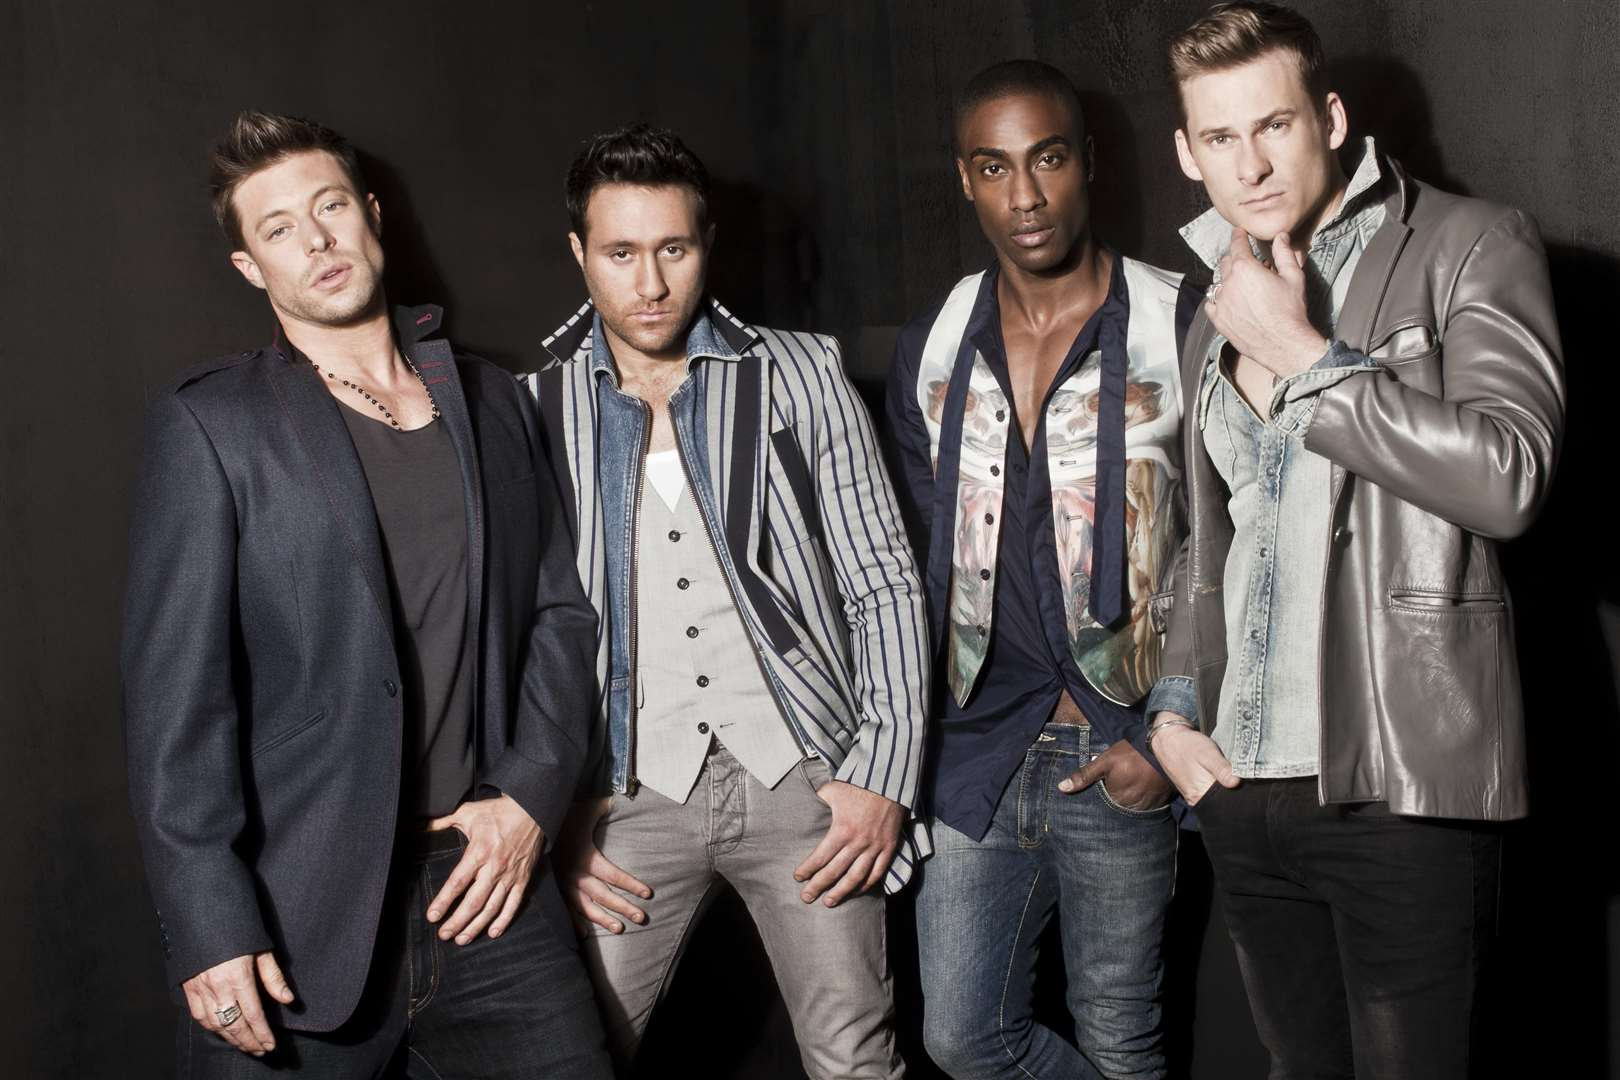 Lee Ryan with his bandmates in Blue